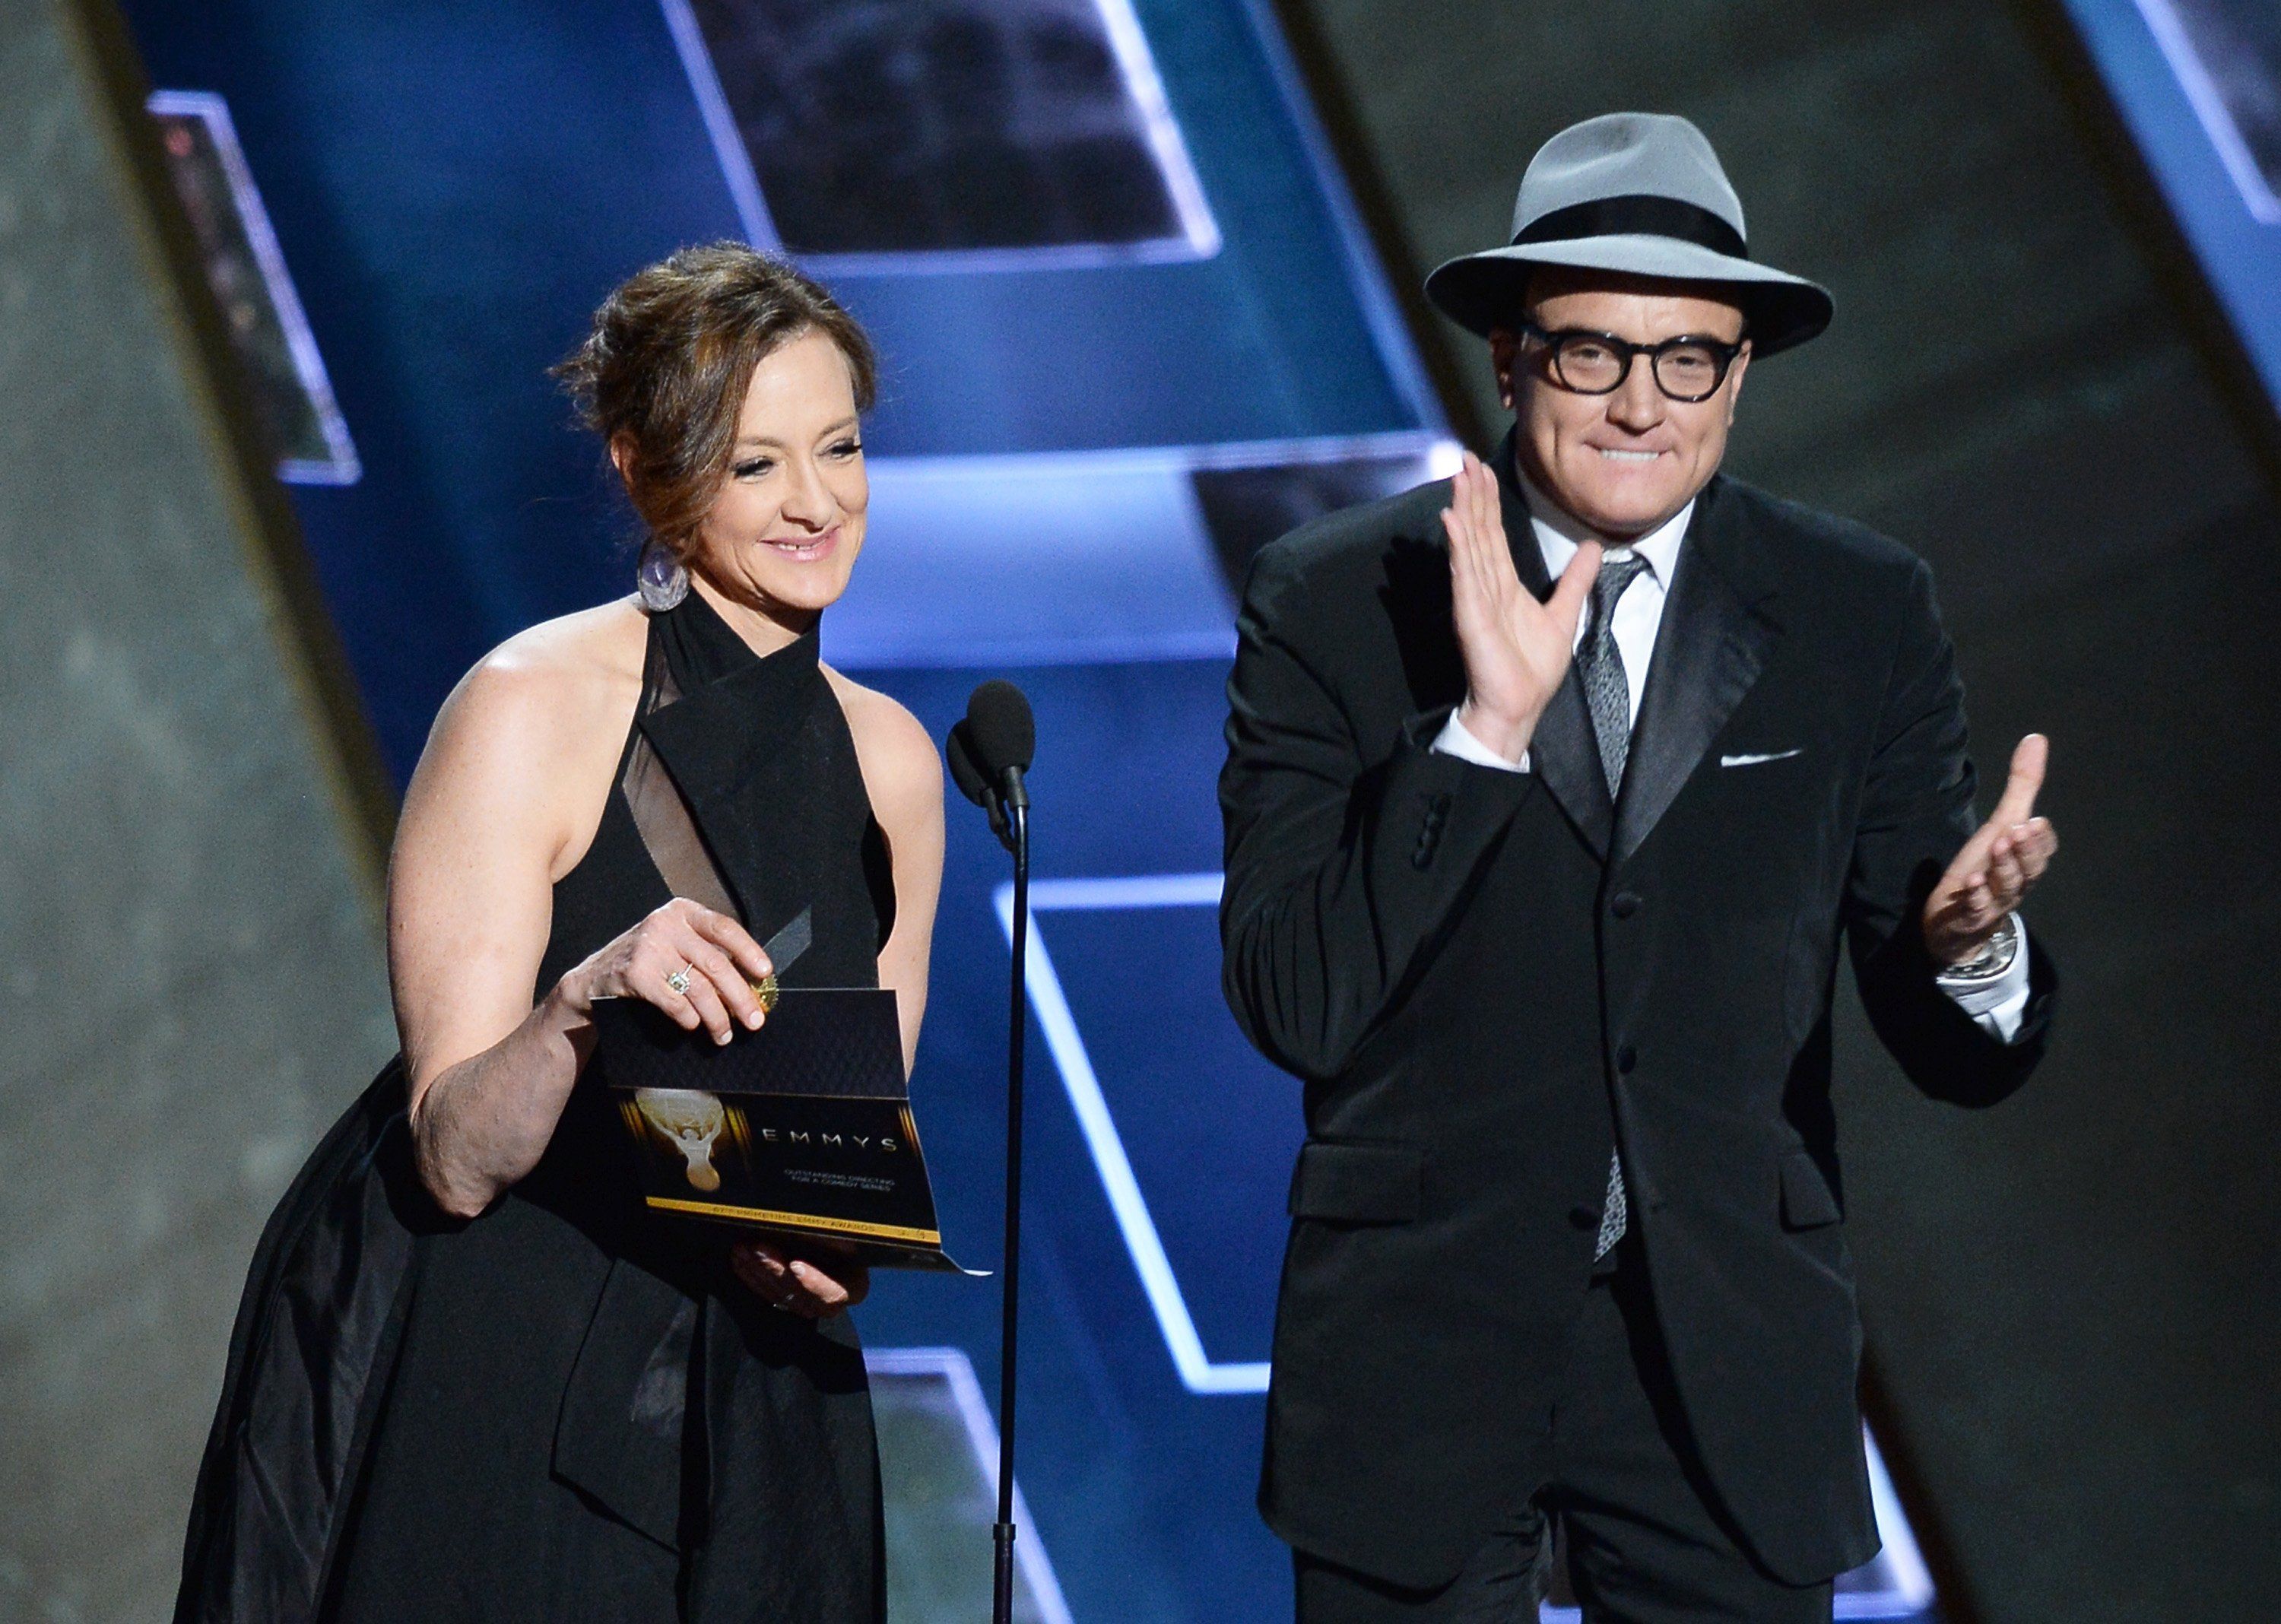 Joan Cusack (L) and actor Bradley Whitford speak onstage during the 67th Annual Primetime Emmy Awards at Microsoft Theater on September 20, 2015 | Photo: Getty Images